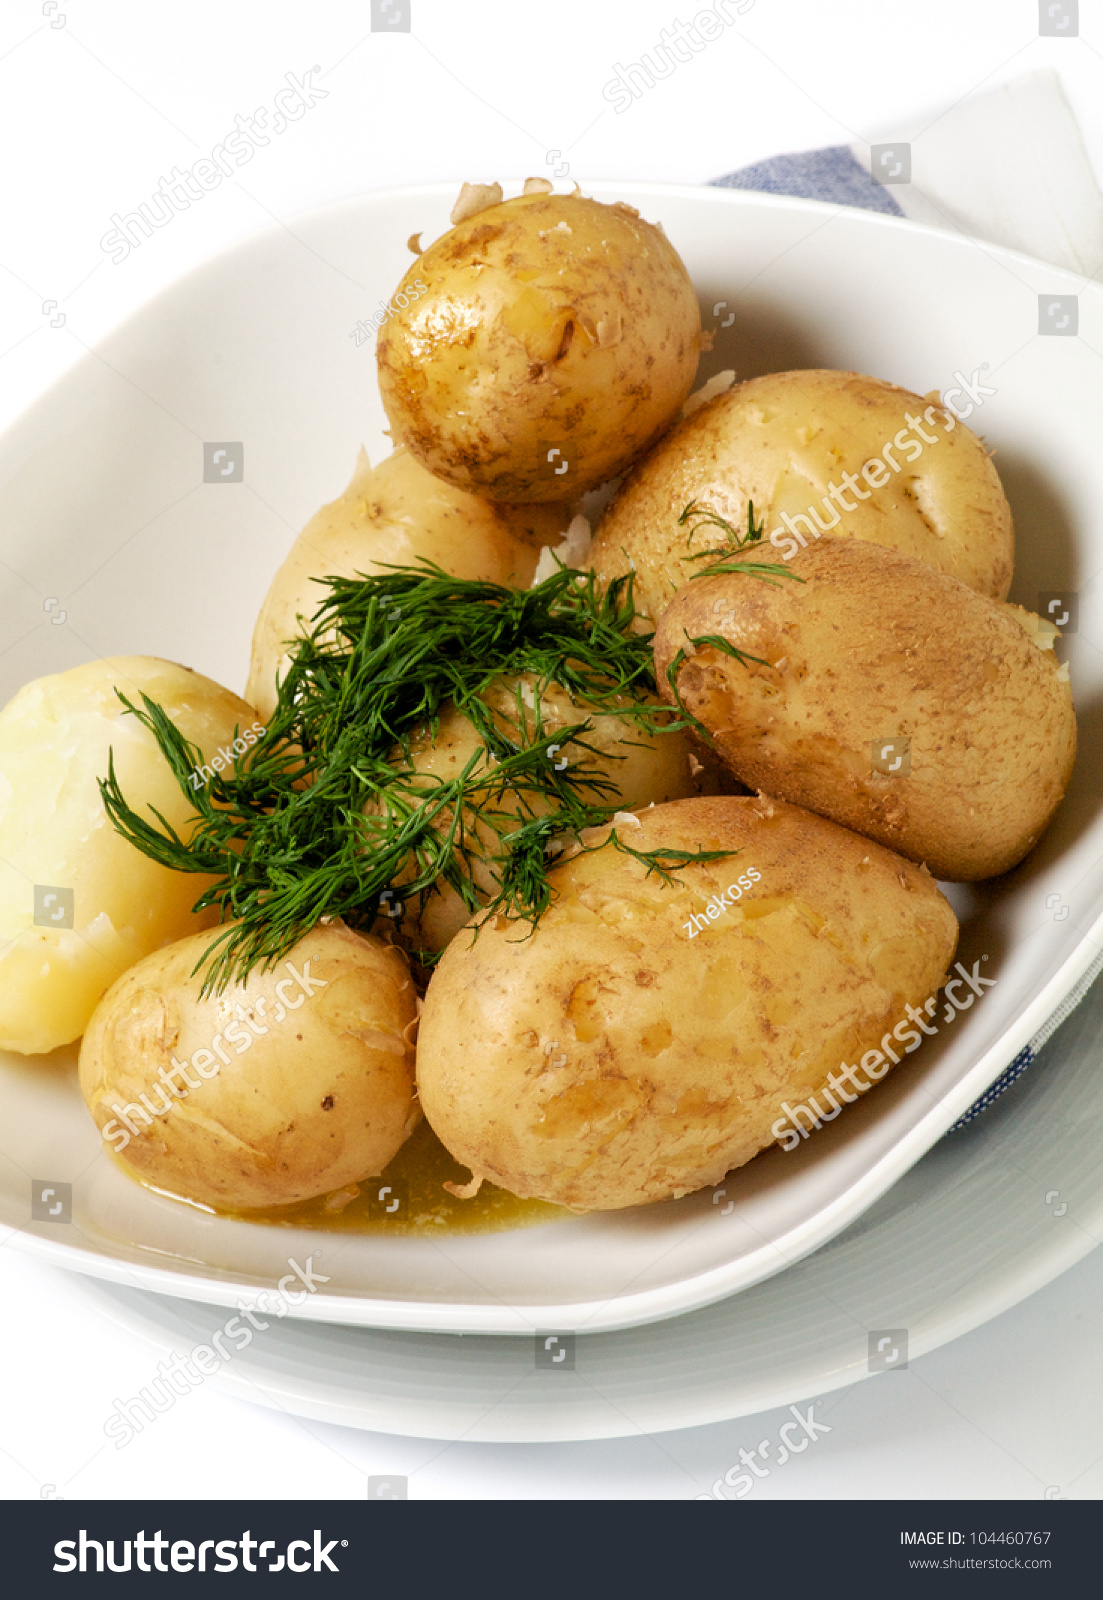 how to cook boiled potatoes with butter